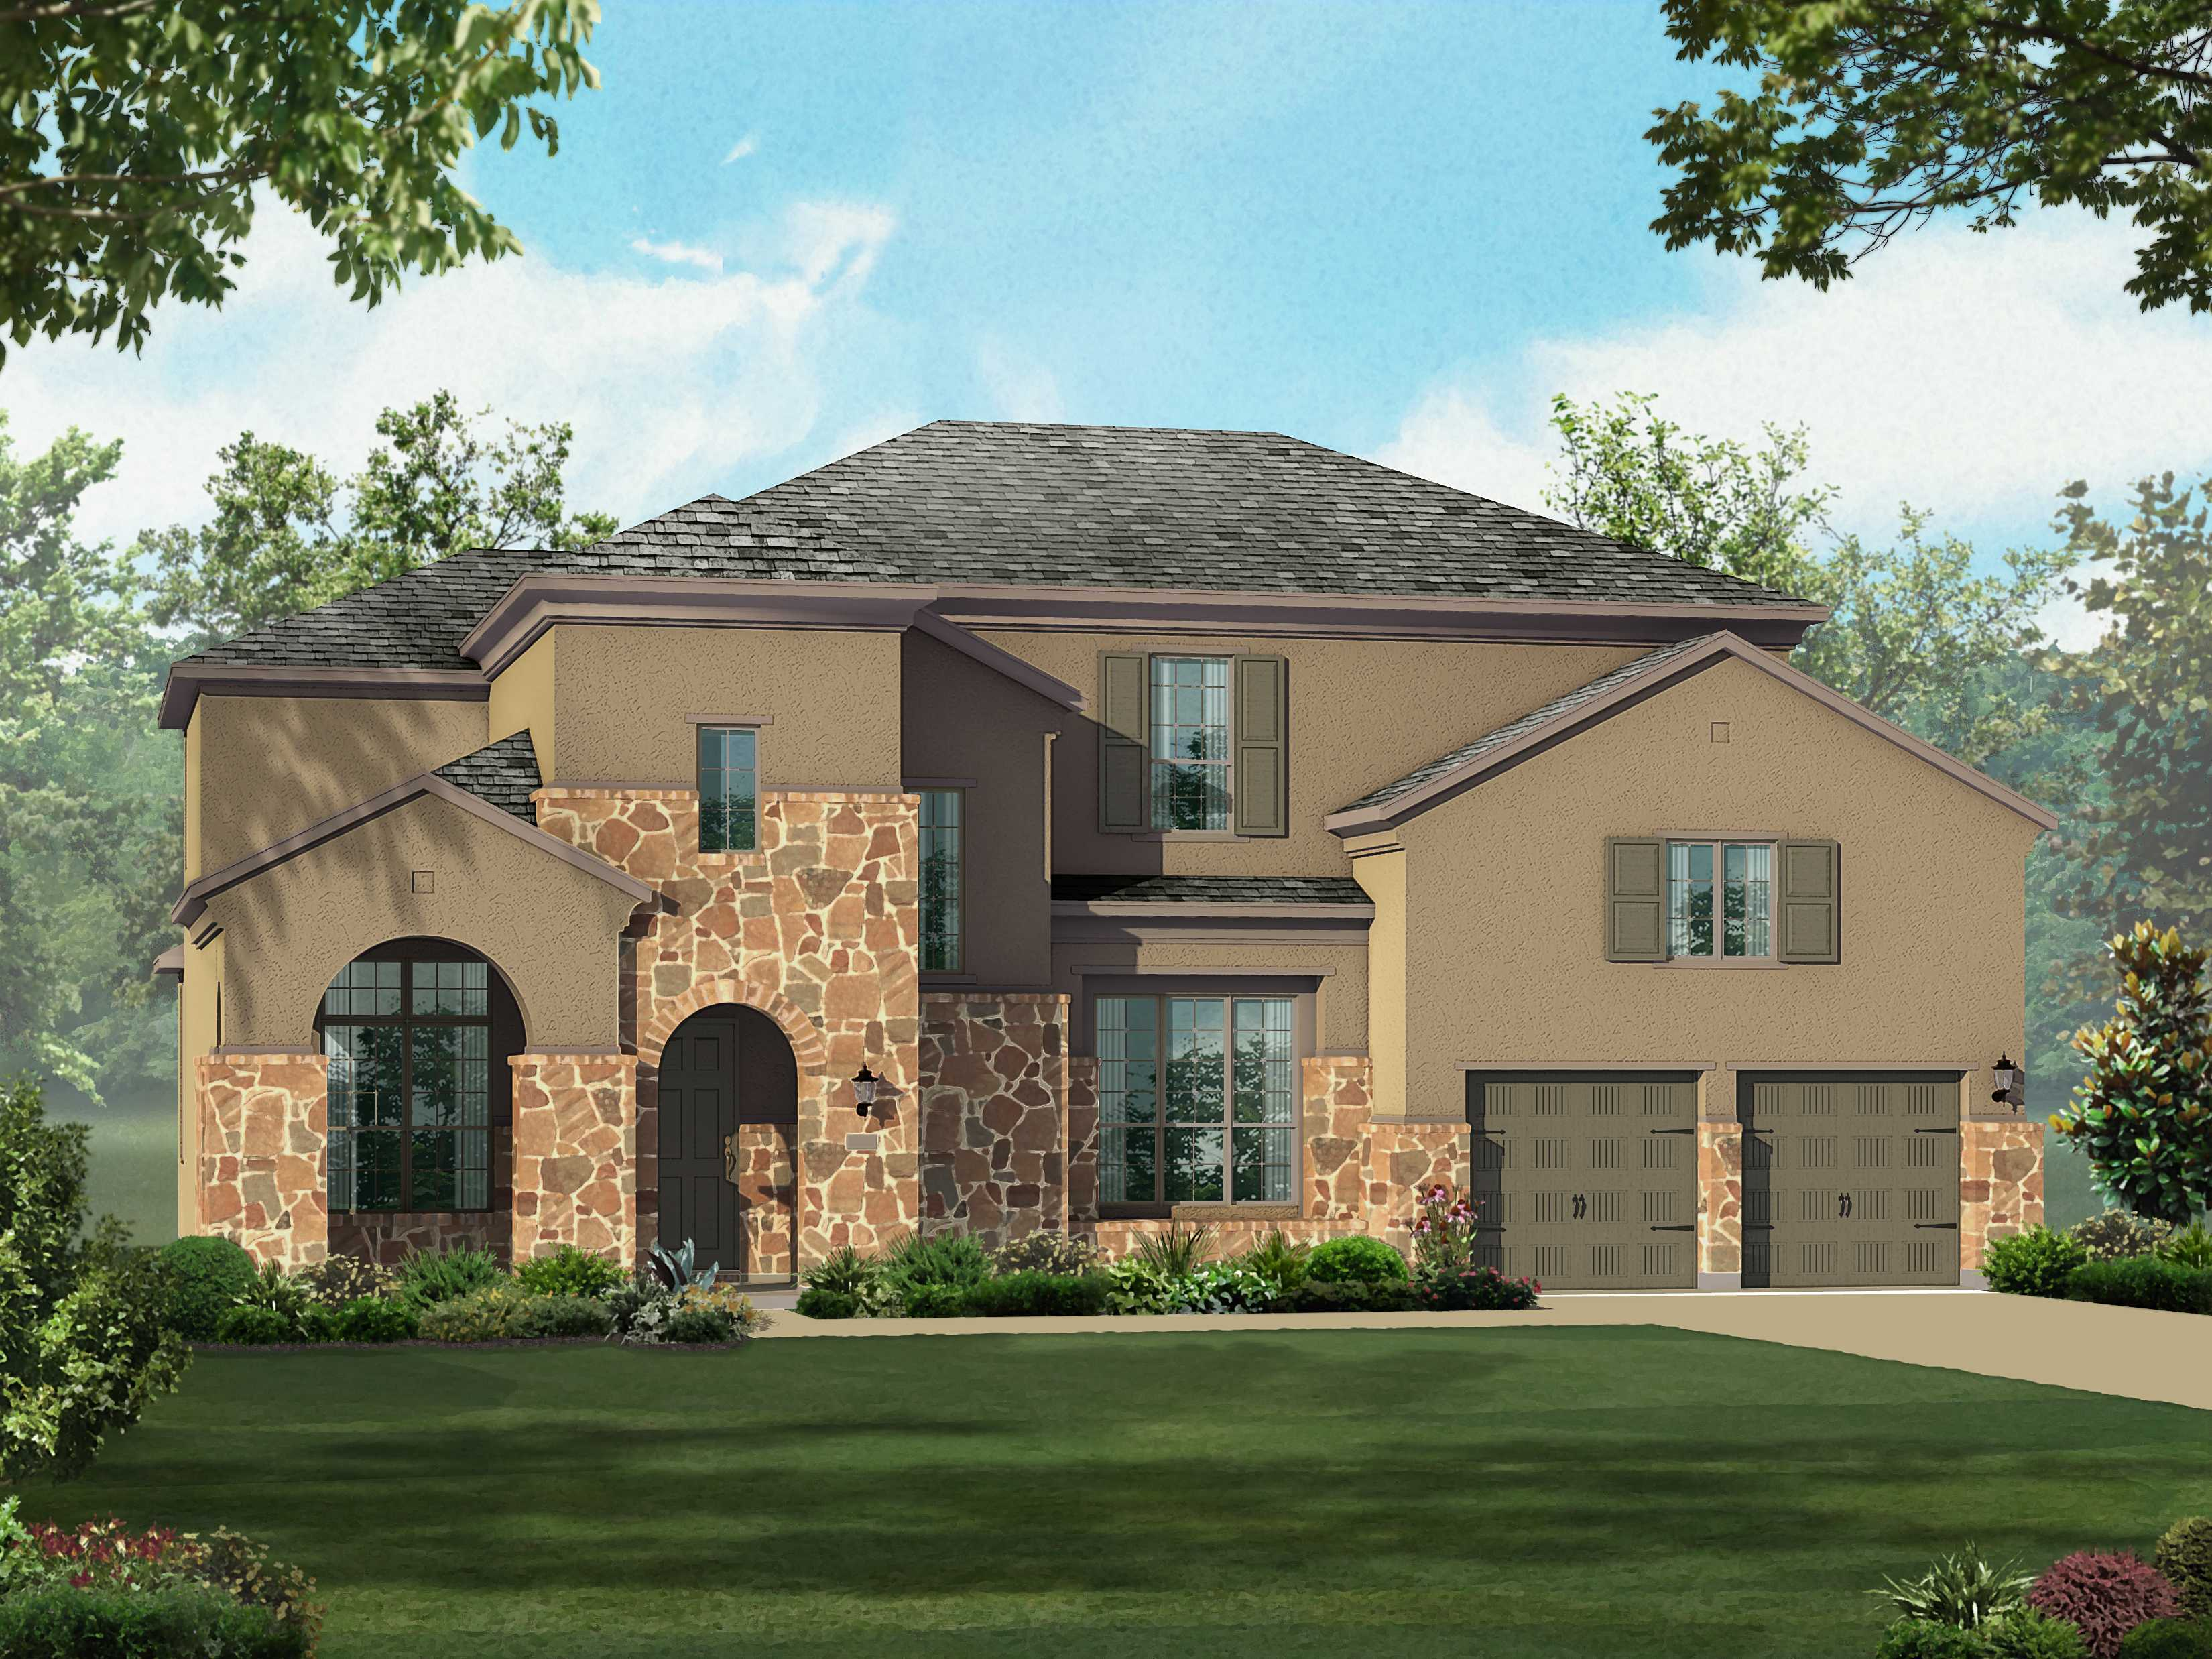 Unifamiliar por un Venta en Overlook At Stonewall Estates - Plan 293 8118 Juliet Hill San Antonio, Texas 78256 United States